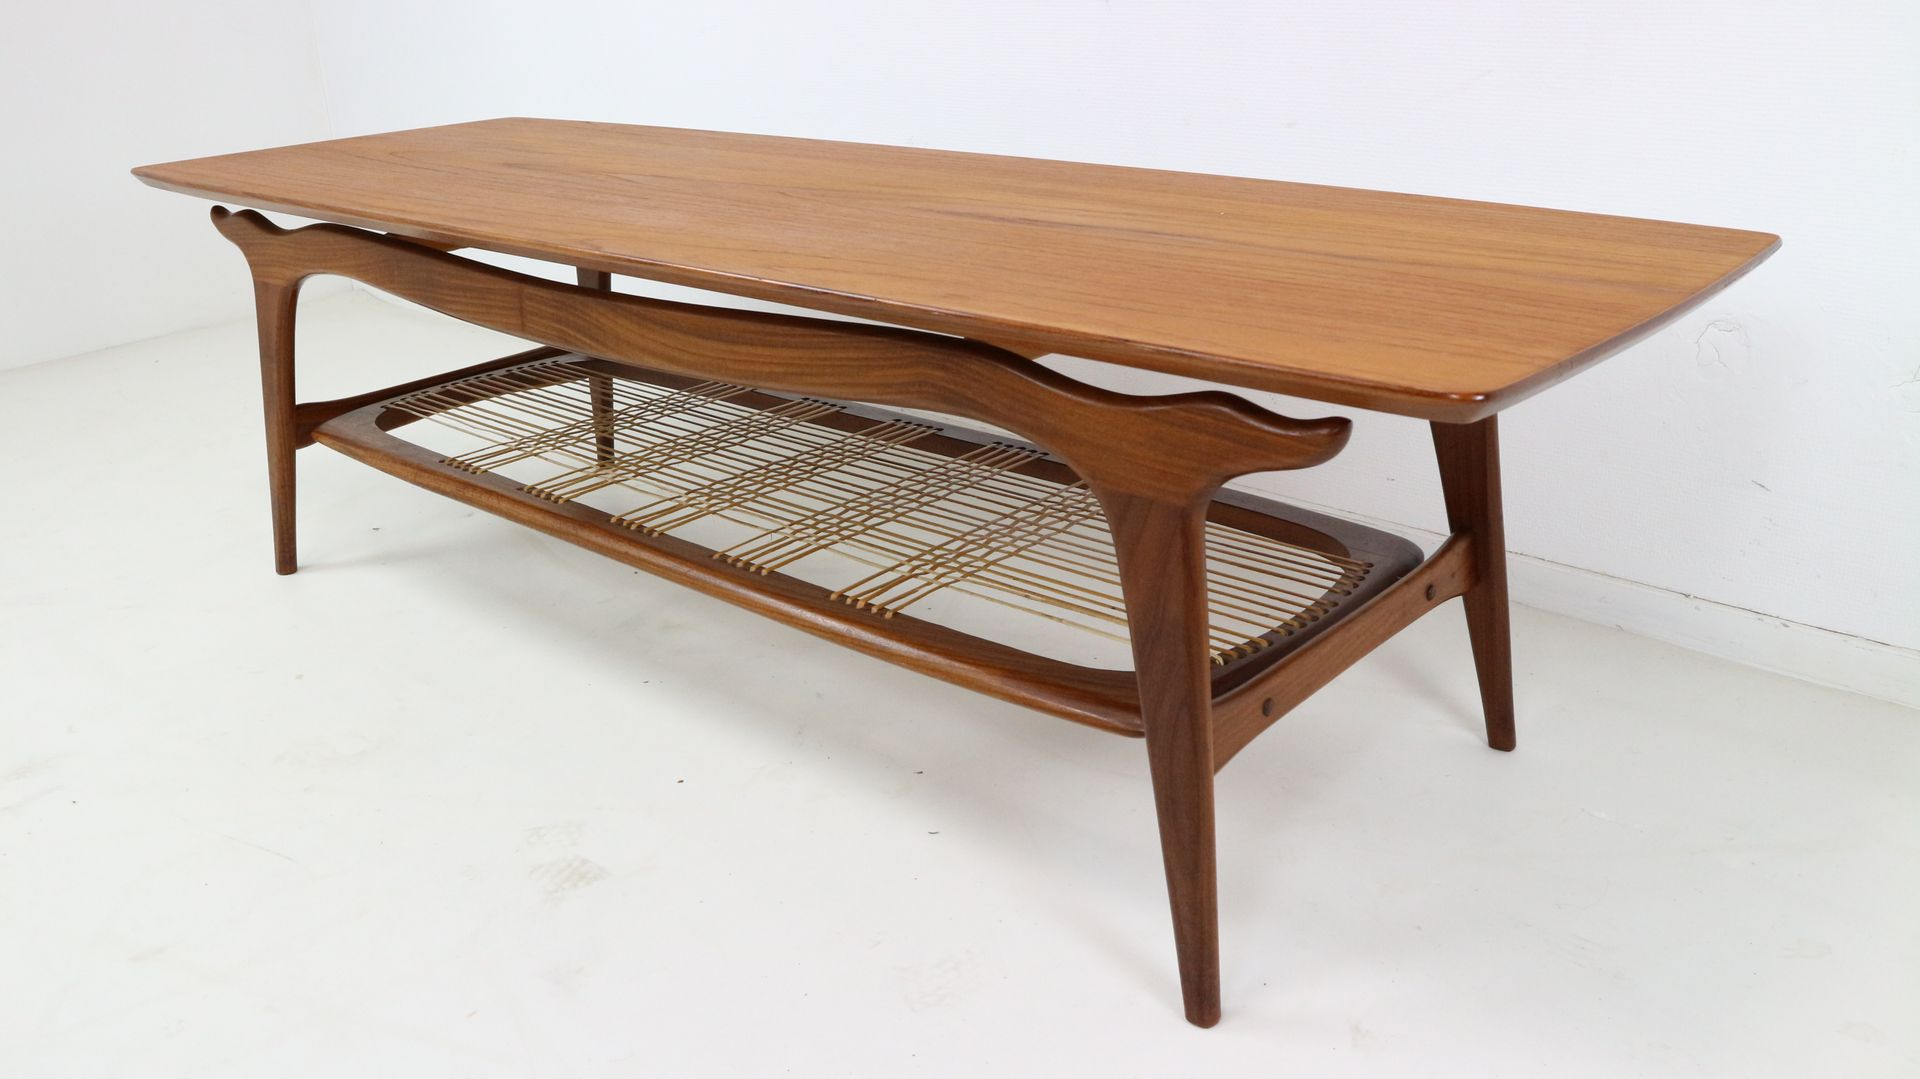 Teak Coffee Table by Louis Van Teeffelen for WéBé 1950s for sale